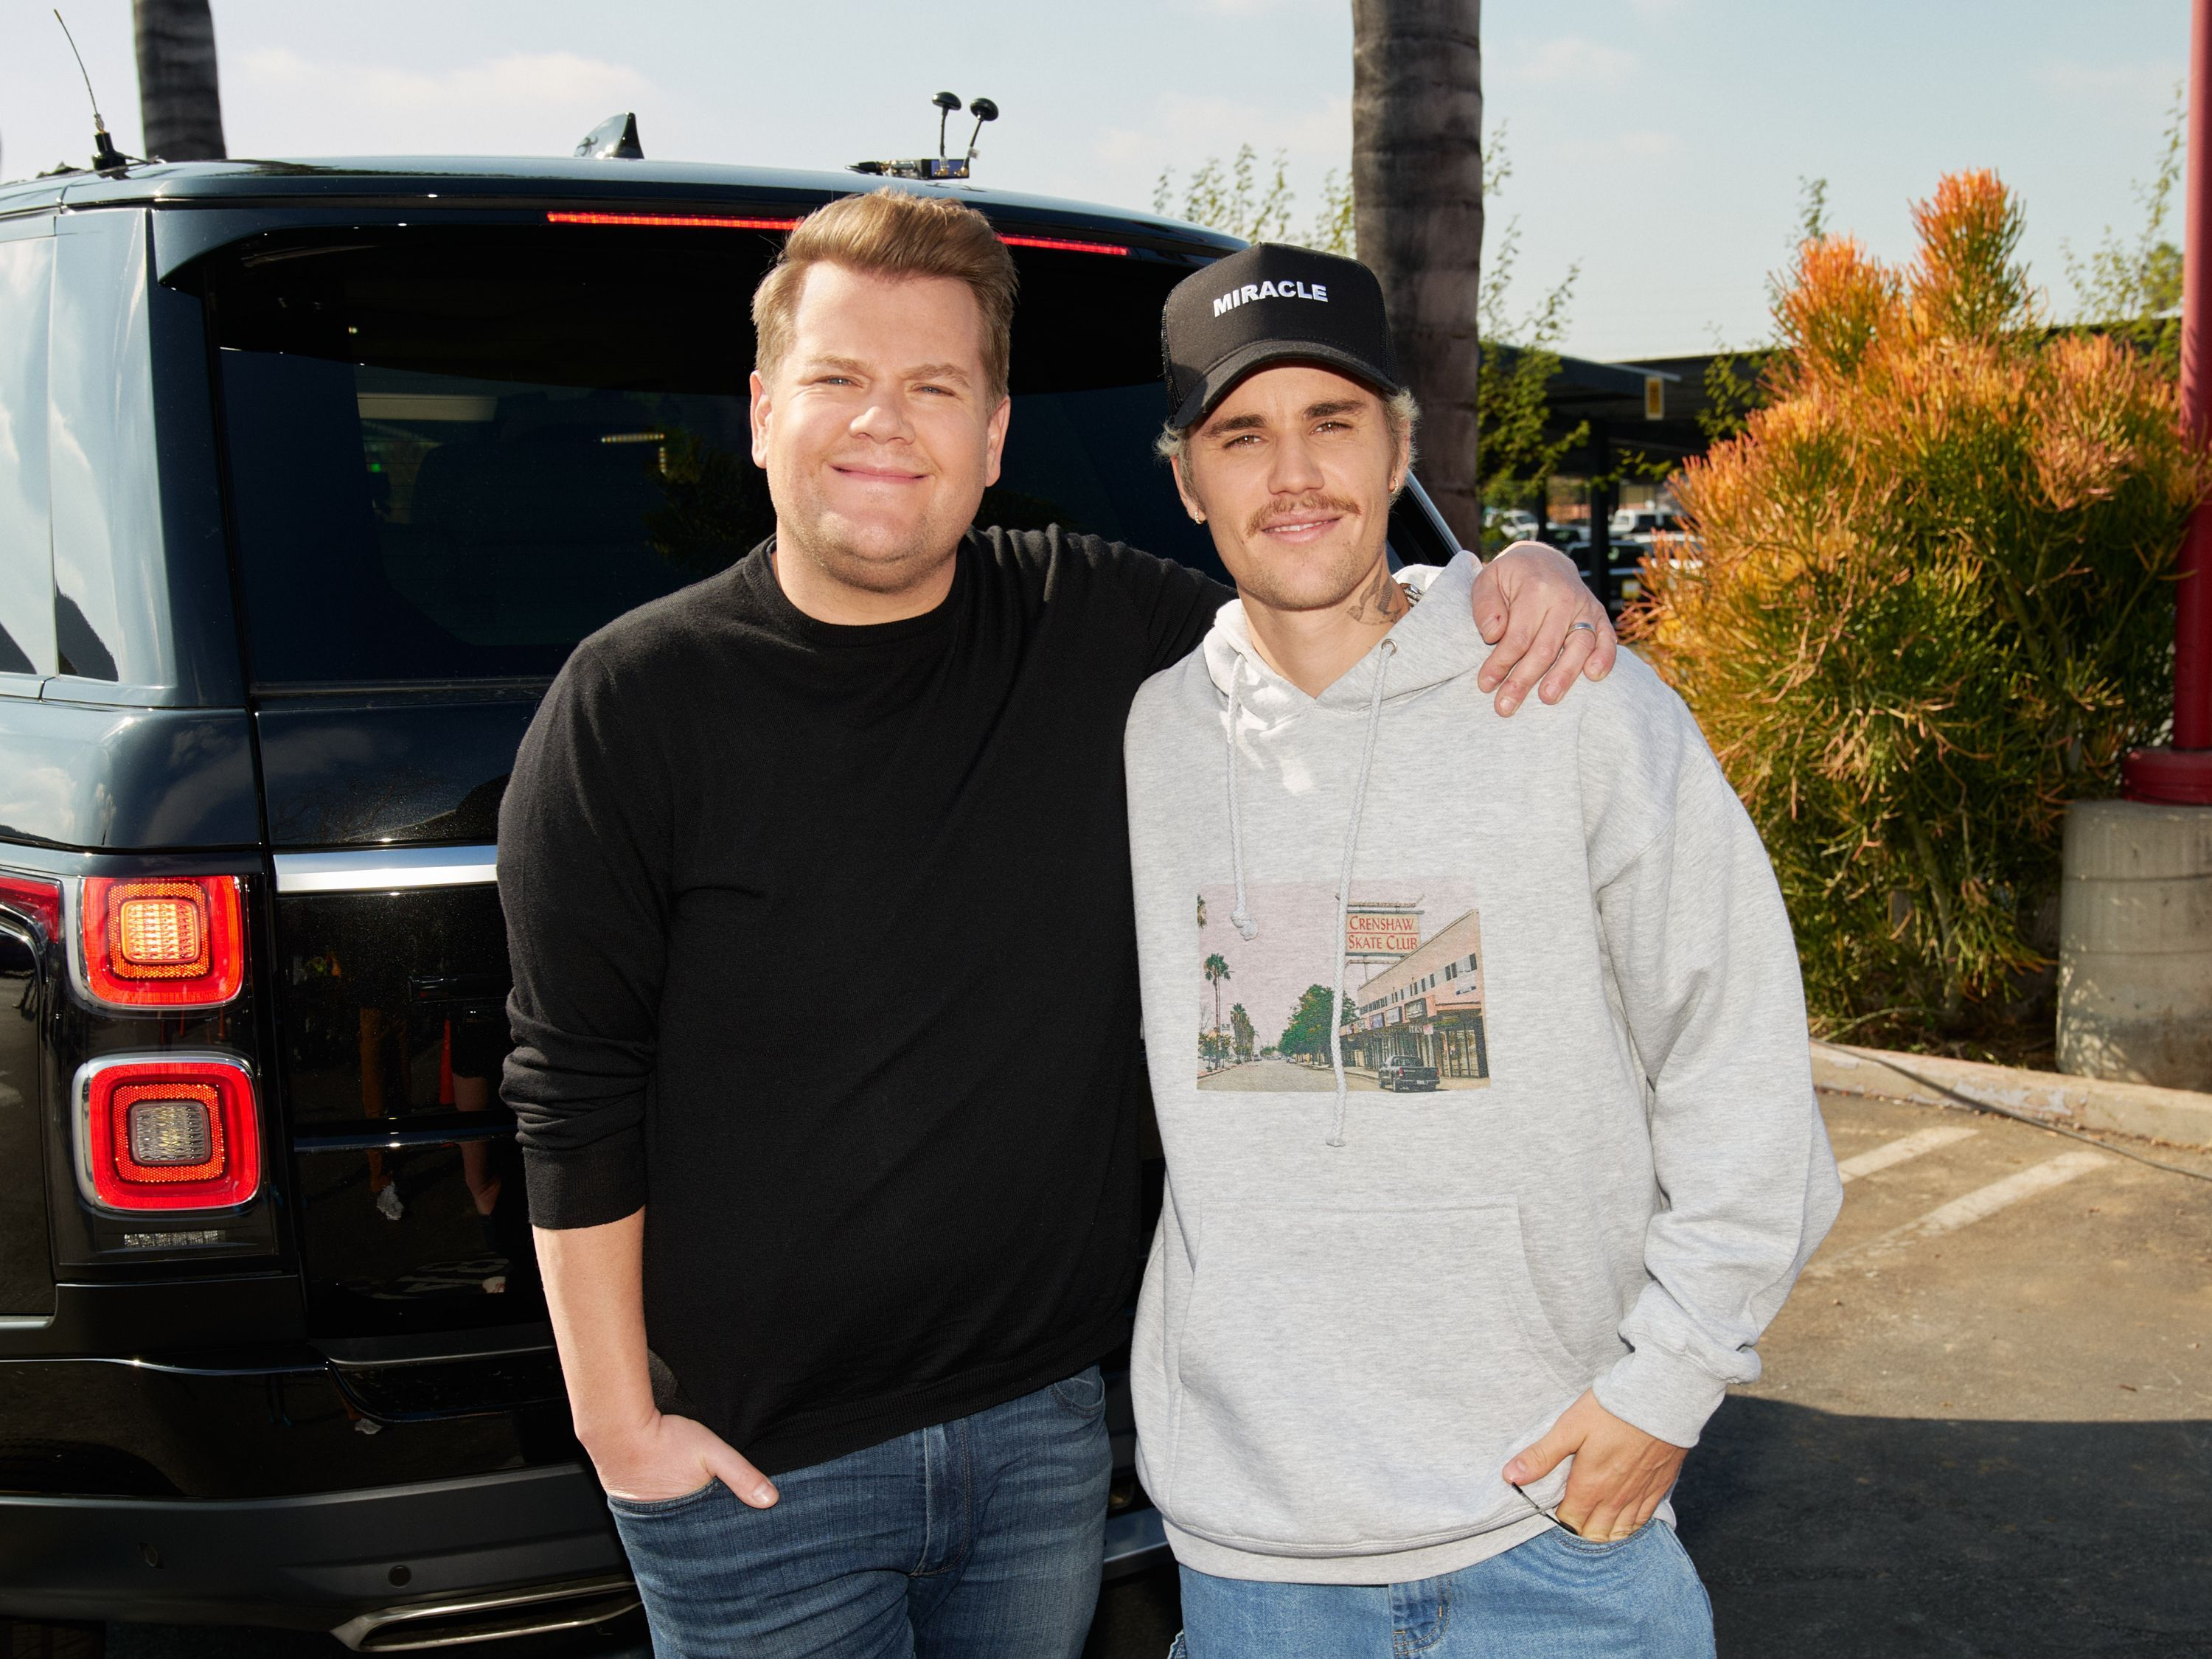 Justin Bieber and James Corden opened a food truck during an episode of #TheLateLateShow. They sold tacos and grilled cheese sandwiches during the segment, with all the profits going to the L.A. Food Bank.   #makingadifference #JustinBieber #tipstor #JamesCorden #TacoTuesday #taco